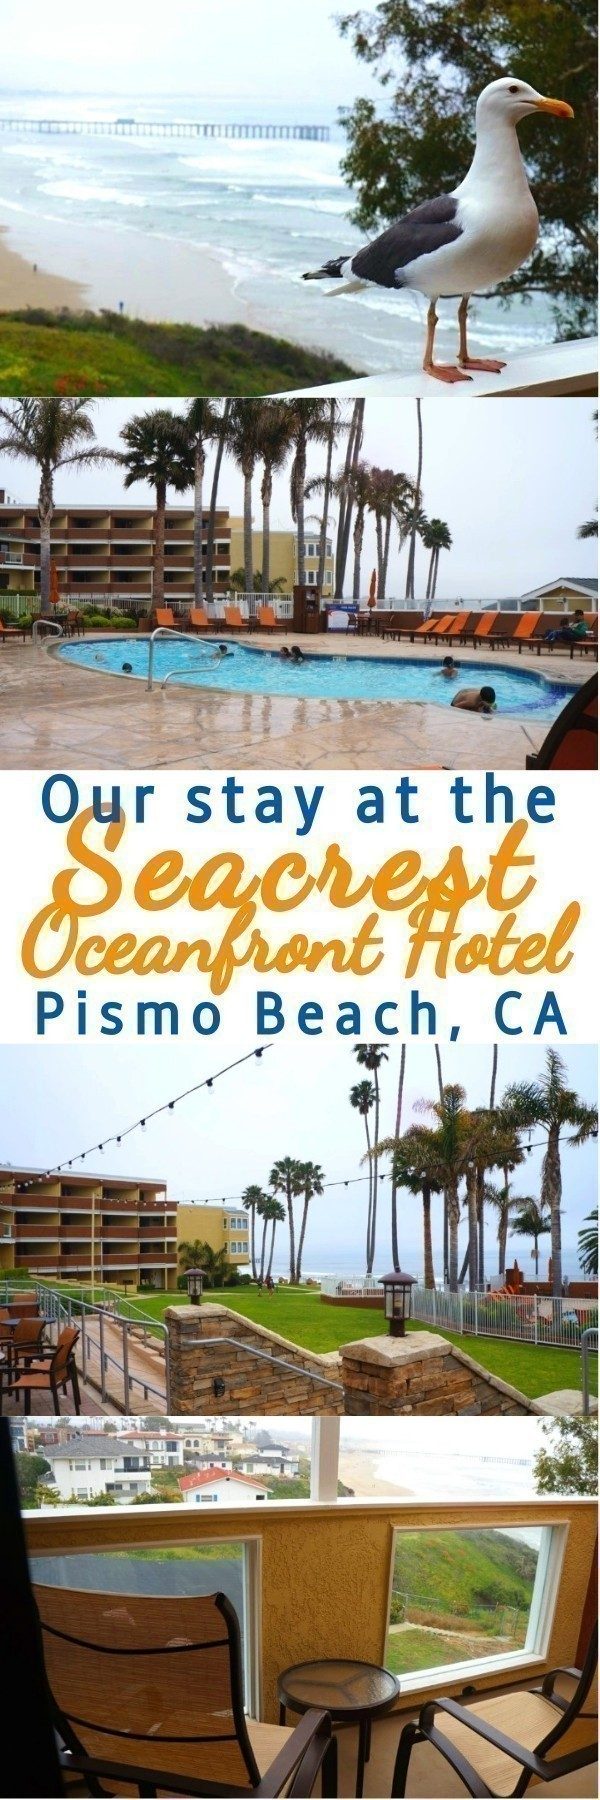 Our Time At Seacrest Oceanfront Hotel In Pismo Beach - Your Family Will Love This Hotel